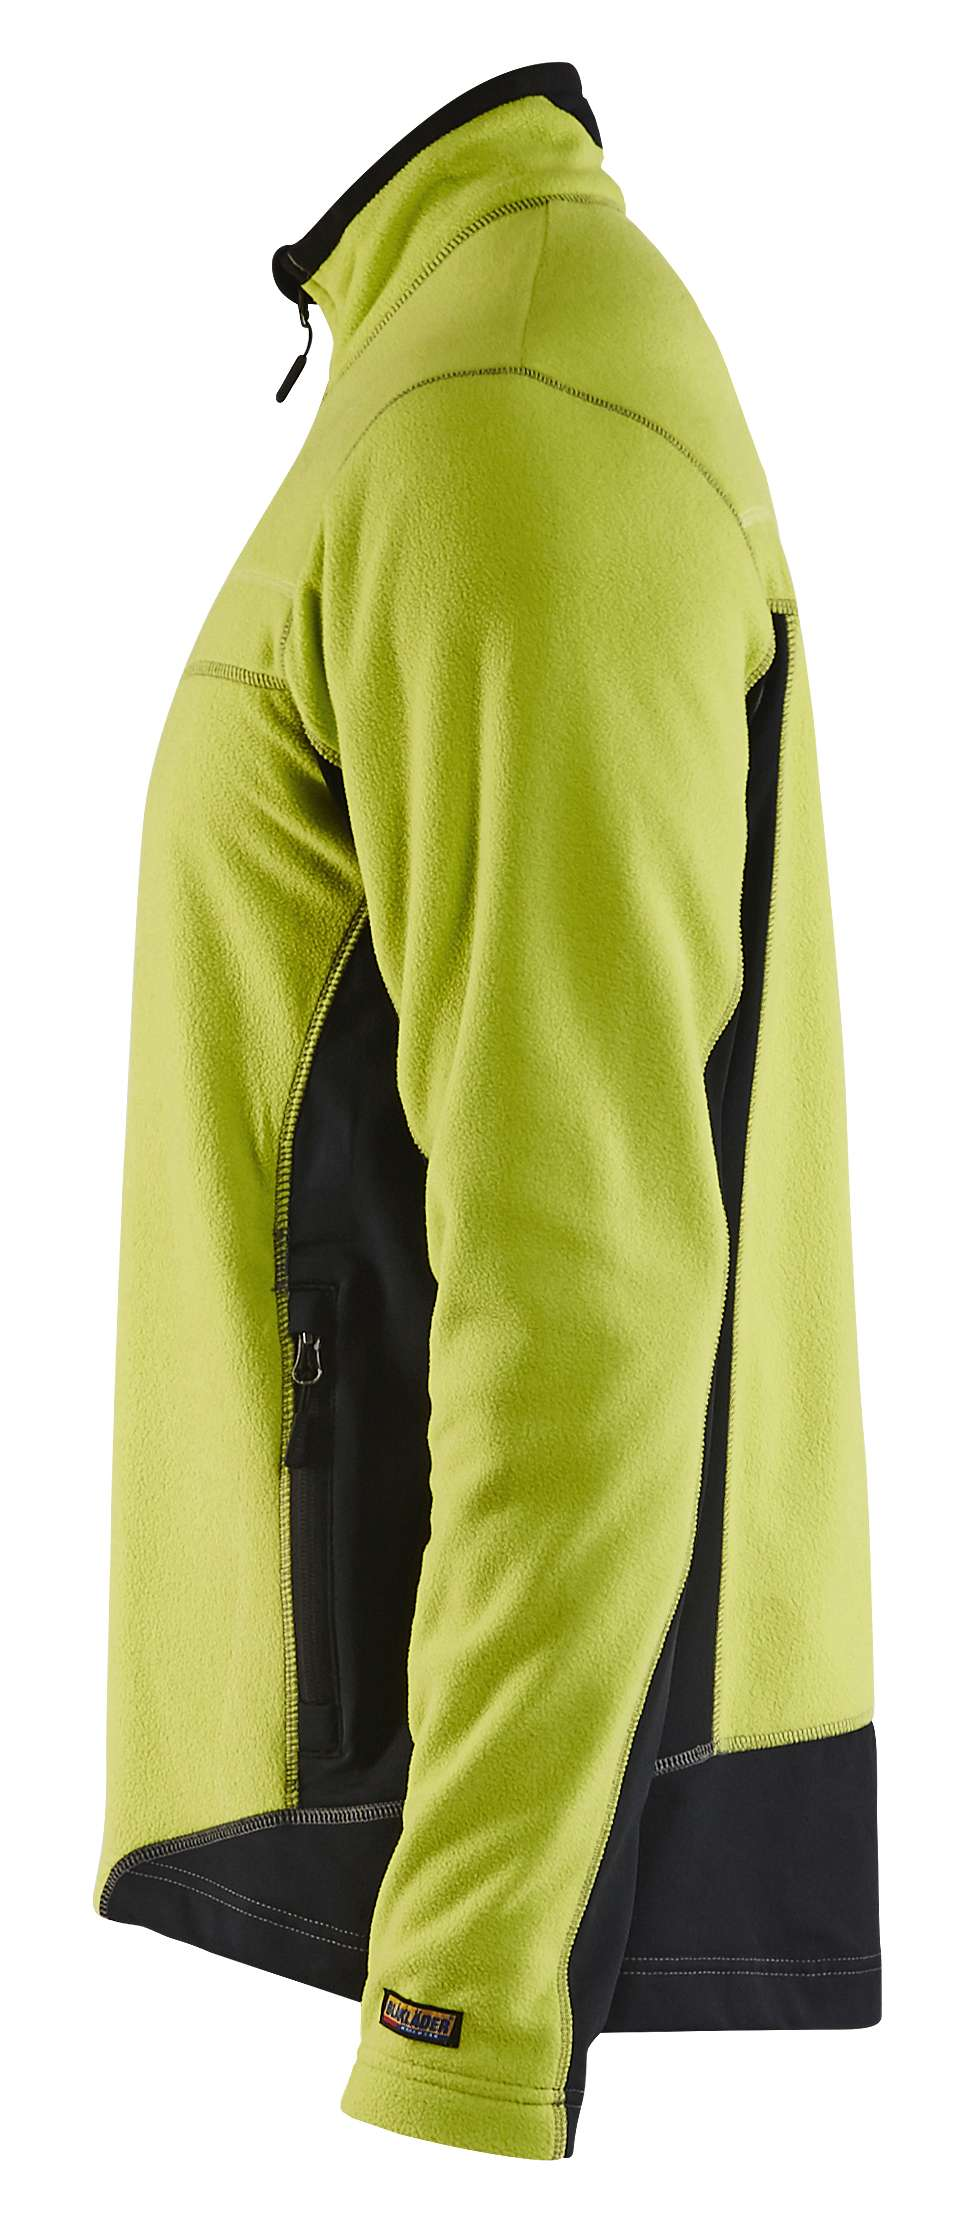 Blaklader Fleece vesten 49971010 lime-zwart(4399)